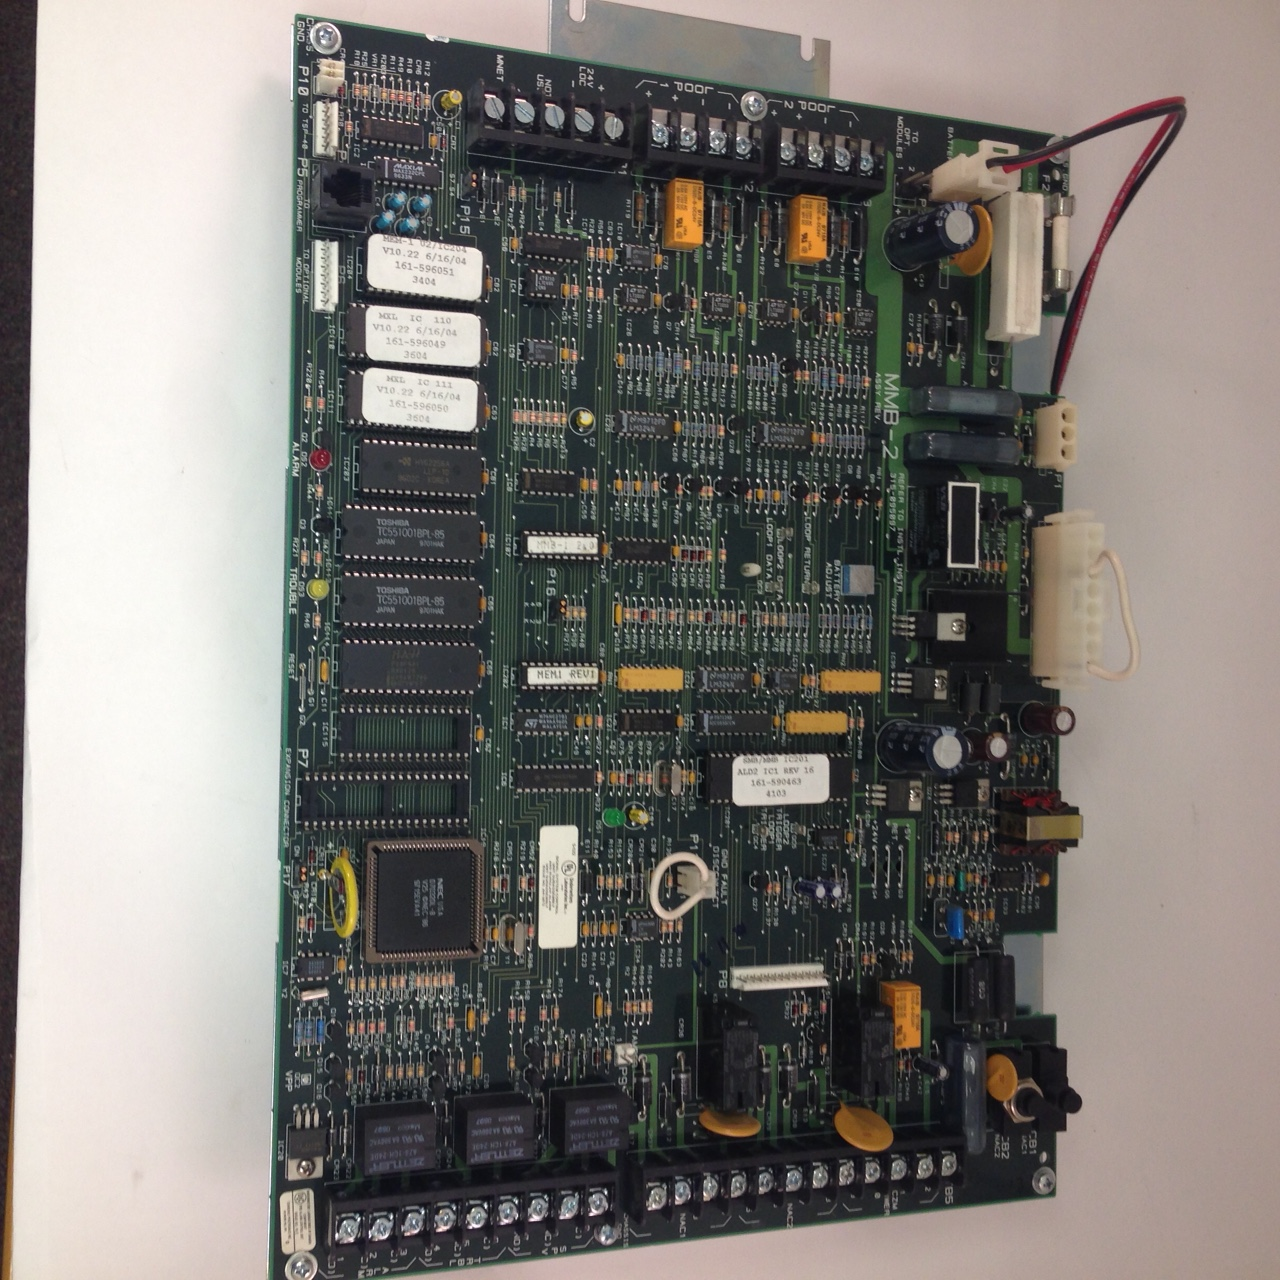 Siemens MXL MXLV MMB-2 Processor CPU main board